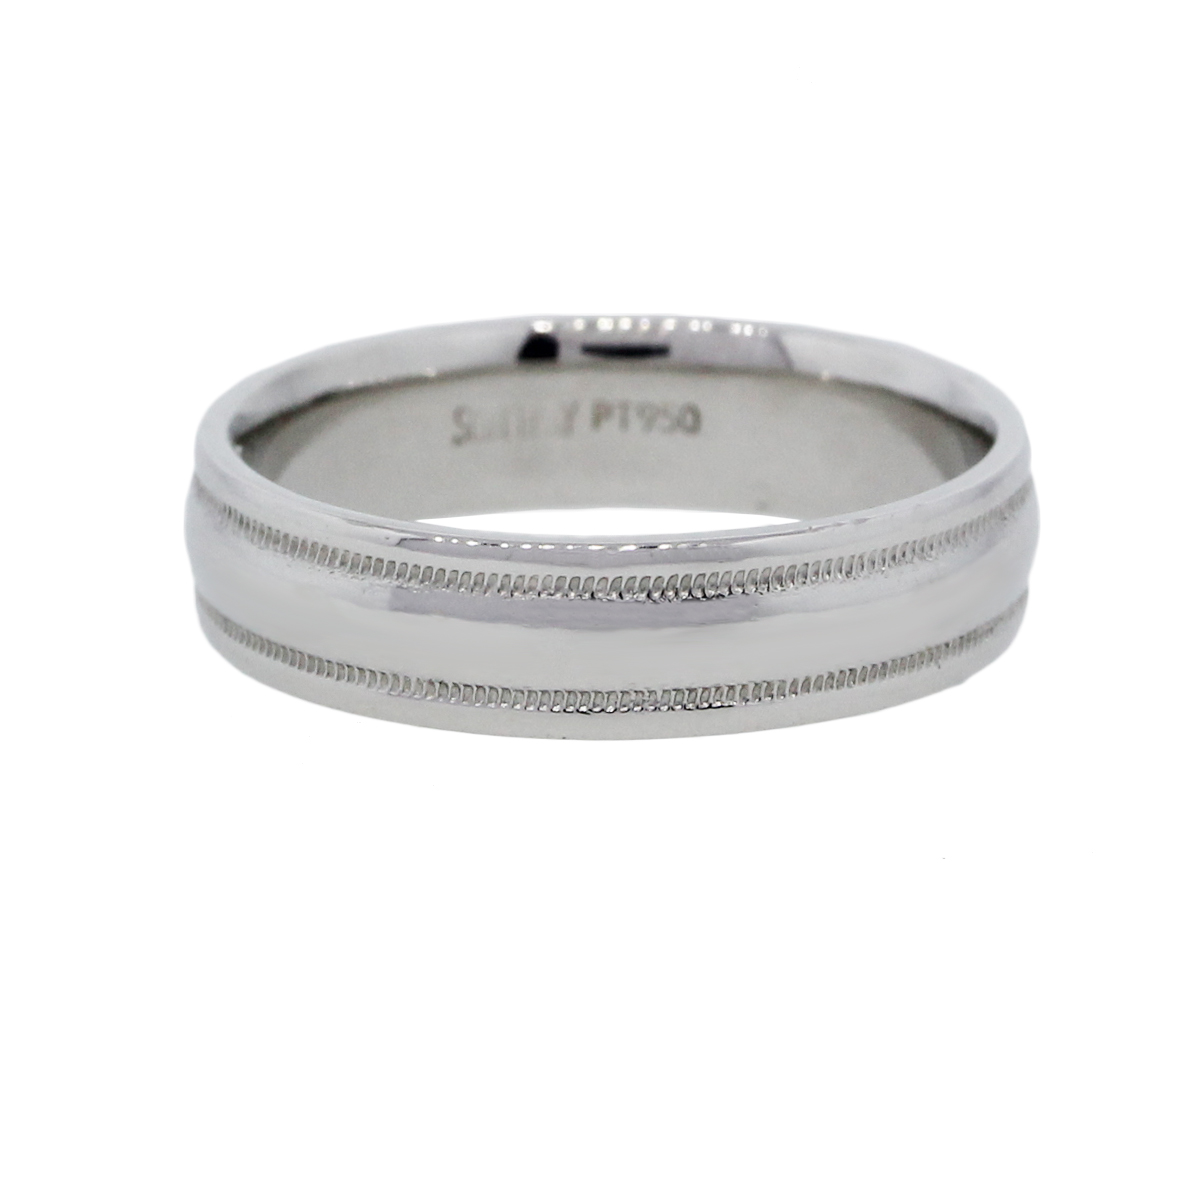 Scott kay platinum mens wedding band ring raymond lee for Kay jewelers wedding rings for men